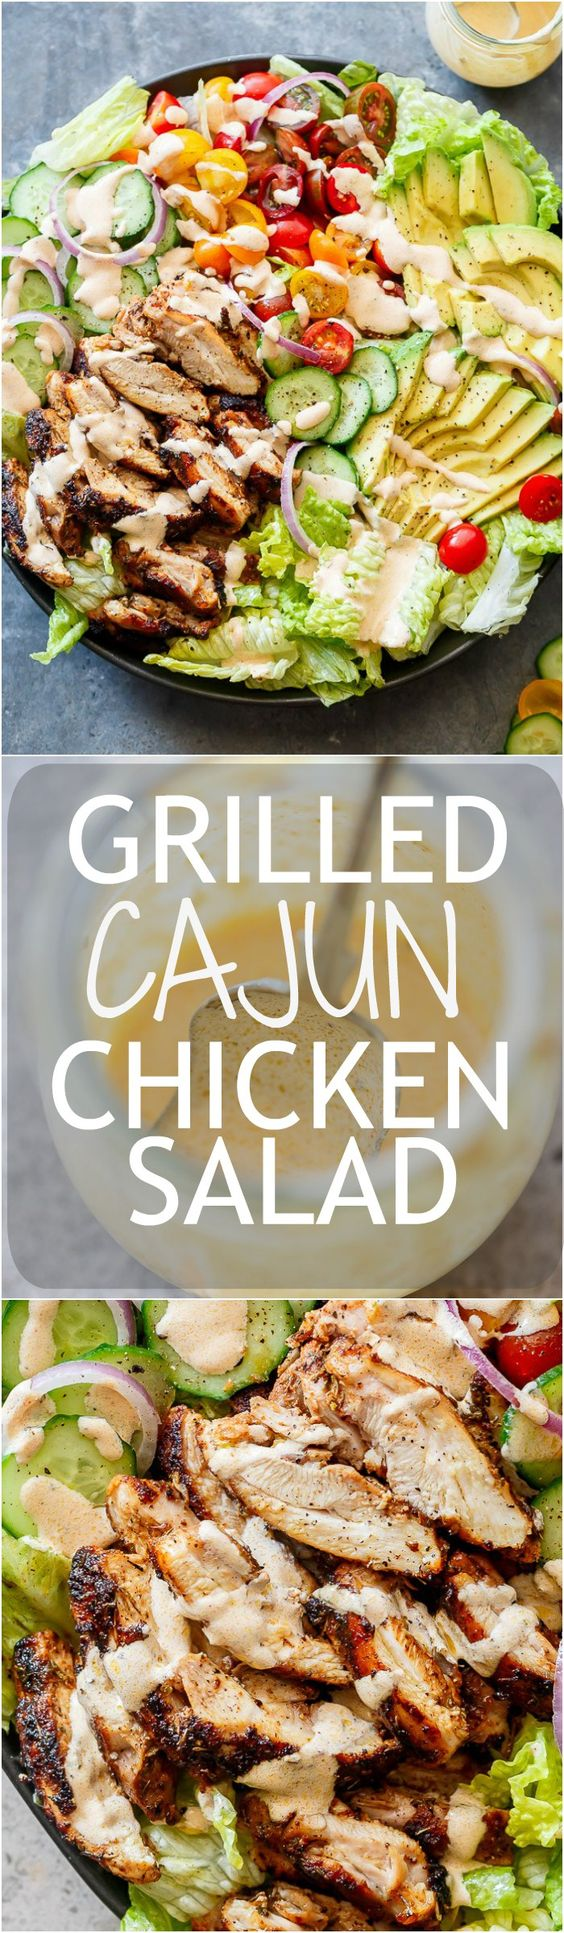 Cajun Chicken Salad with a homemade Cajun spice seasoning and the ...